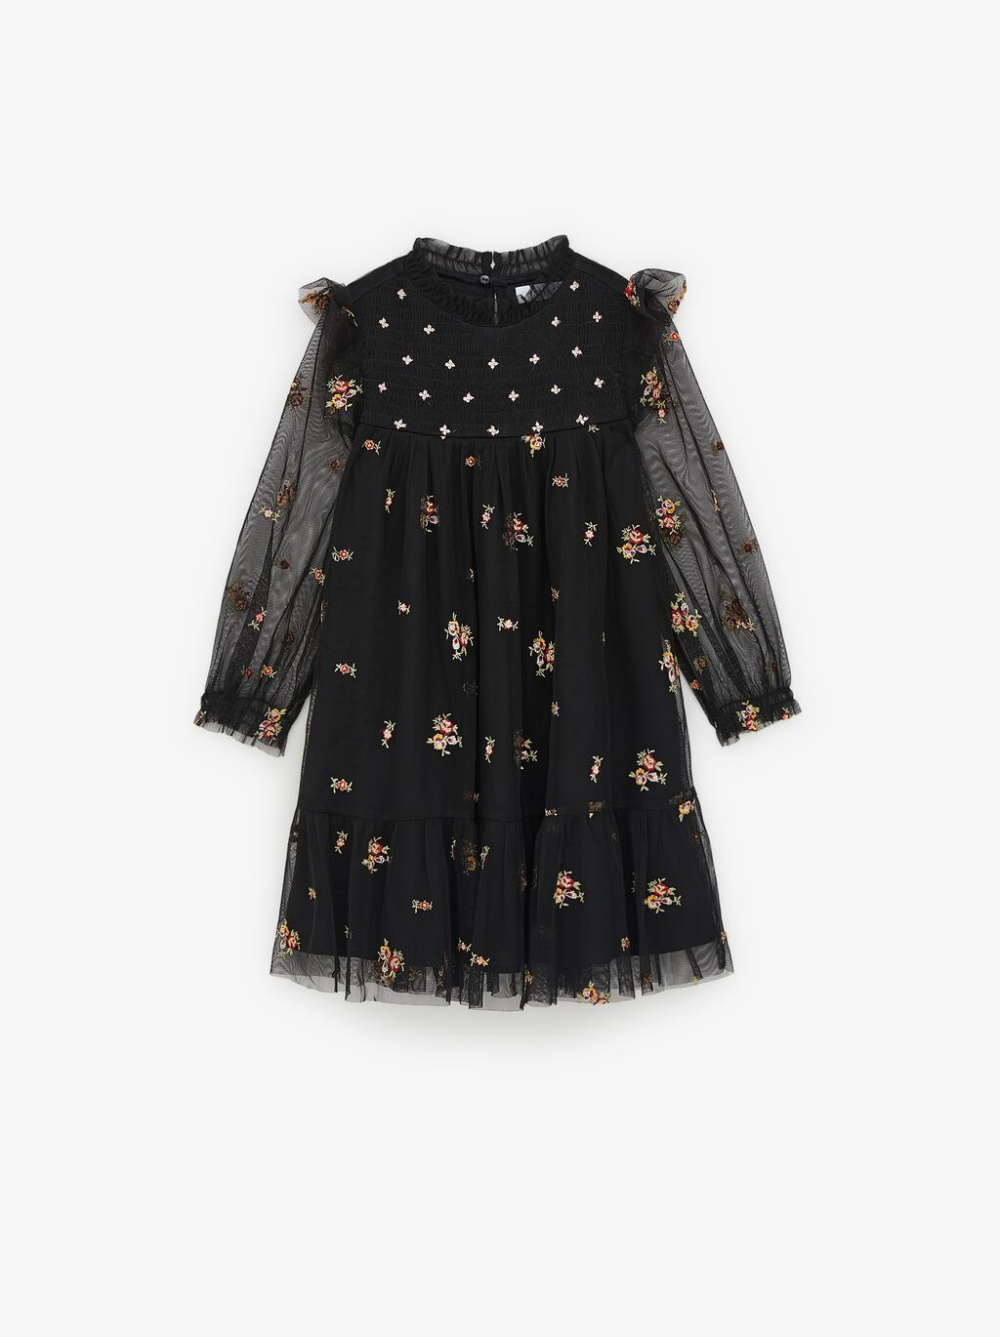 Embroidered Tulle Dress Dresses Jumpsuits Girl 6 14 Years Kids Zara United States Embroidered Tulle Dress Tulle Dress Dresses Kids Girl